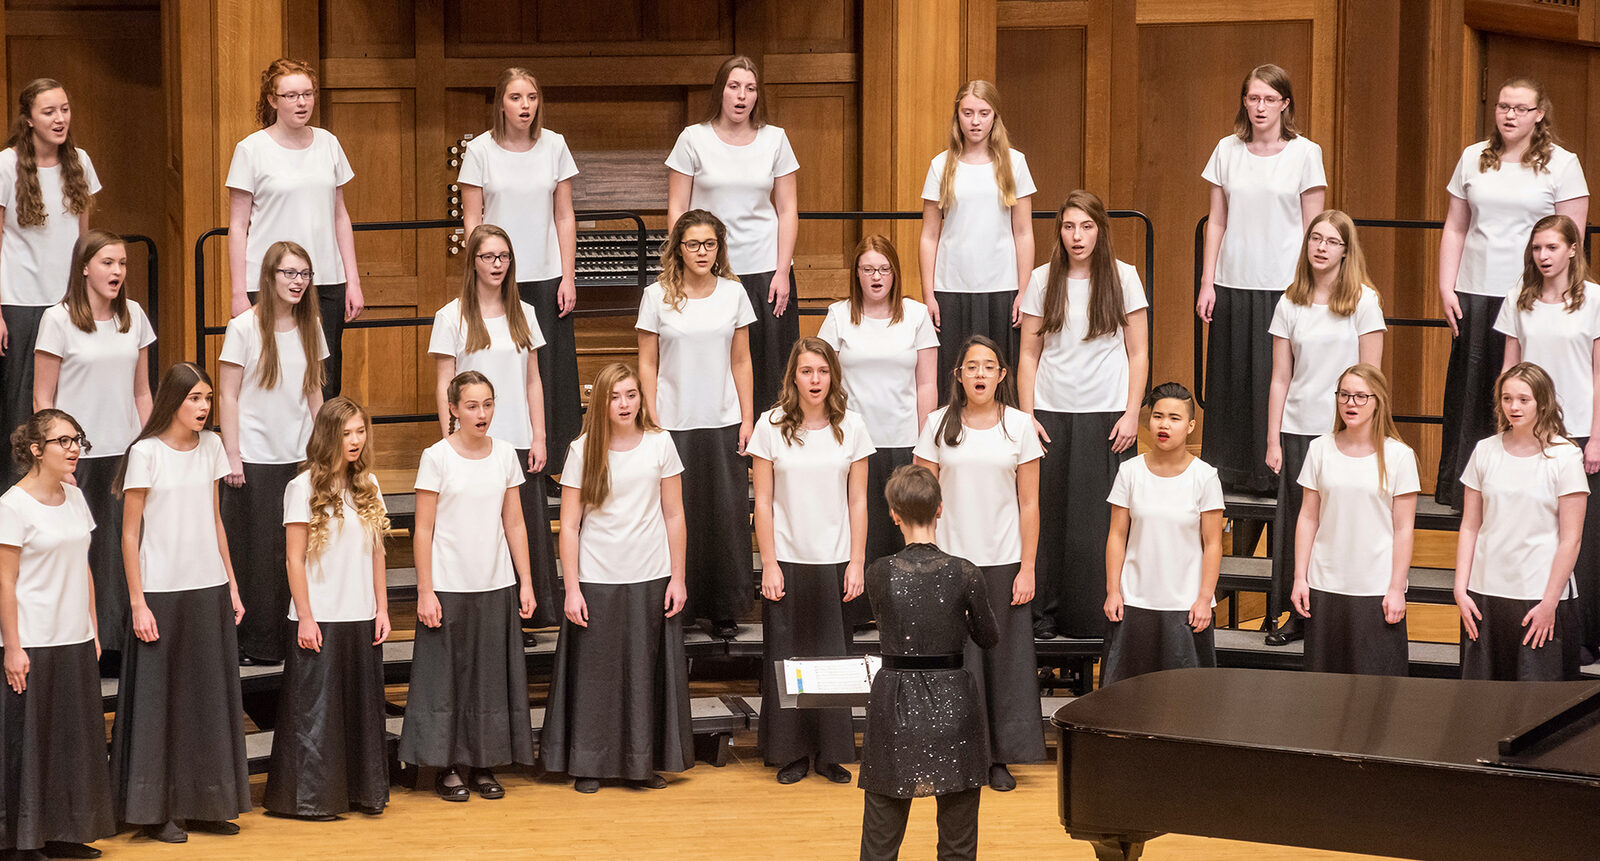 Cantabile singing onstage during a concert. They wear white, short-sleeved blouses and long black skirts or black pants. Their conductor stands in front of them.